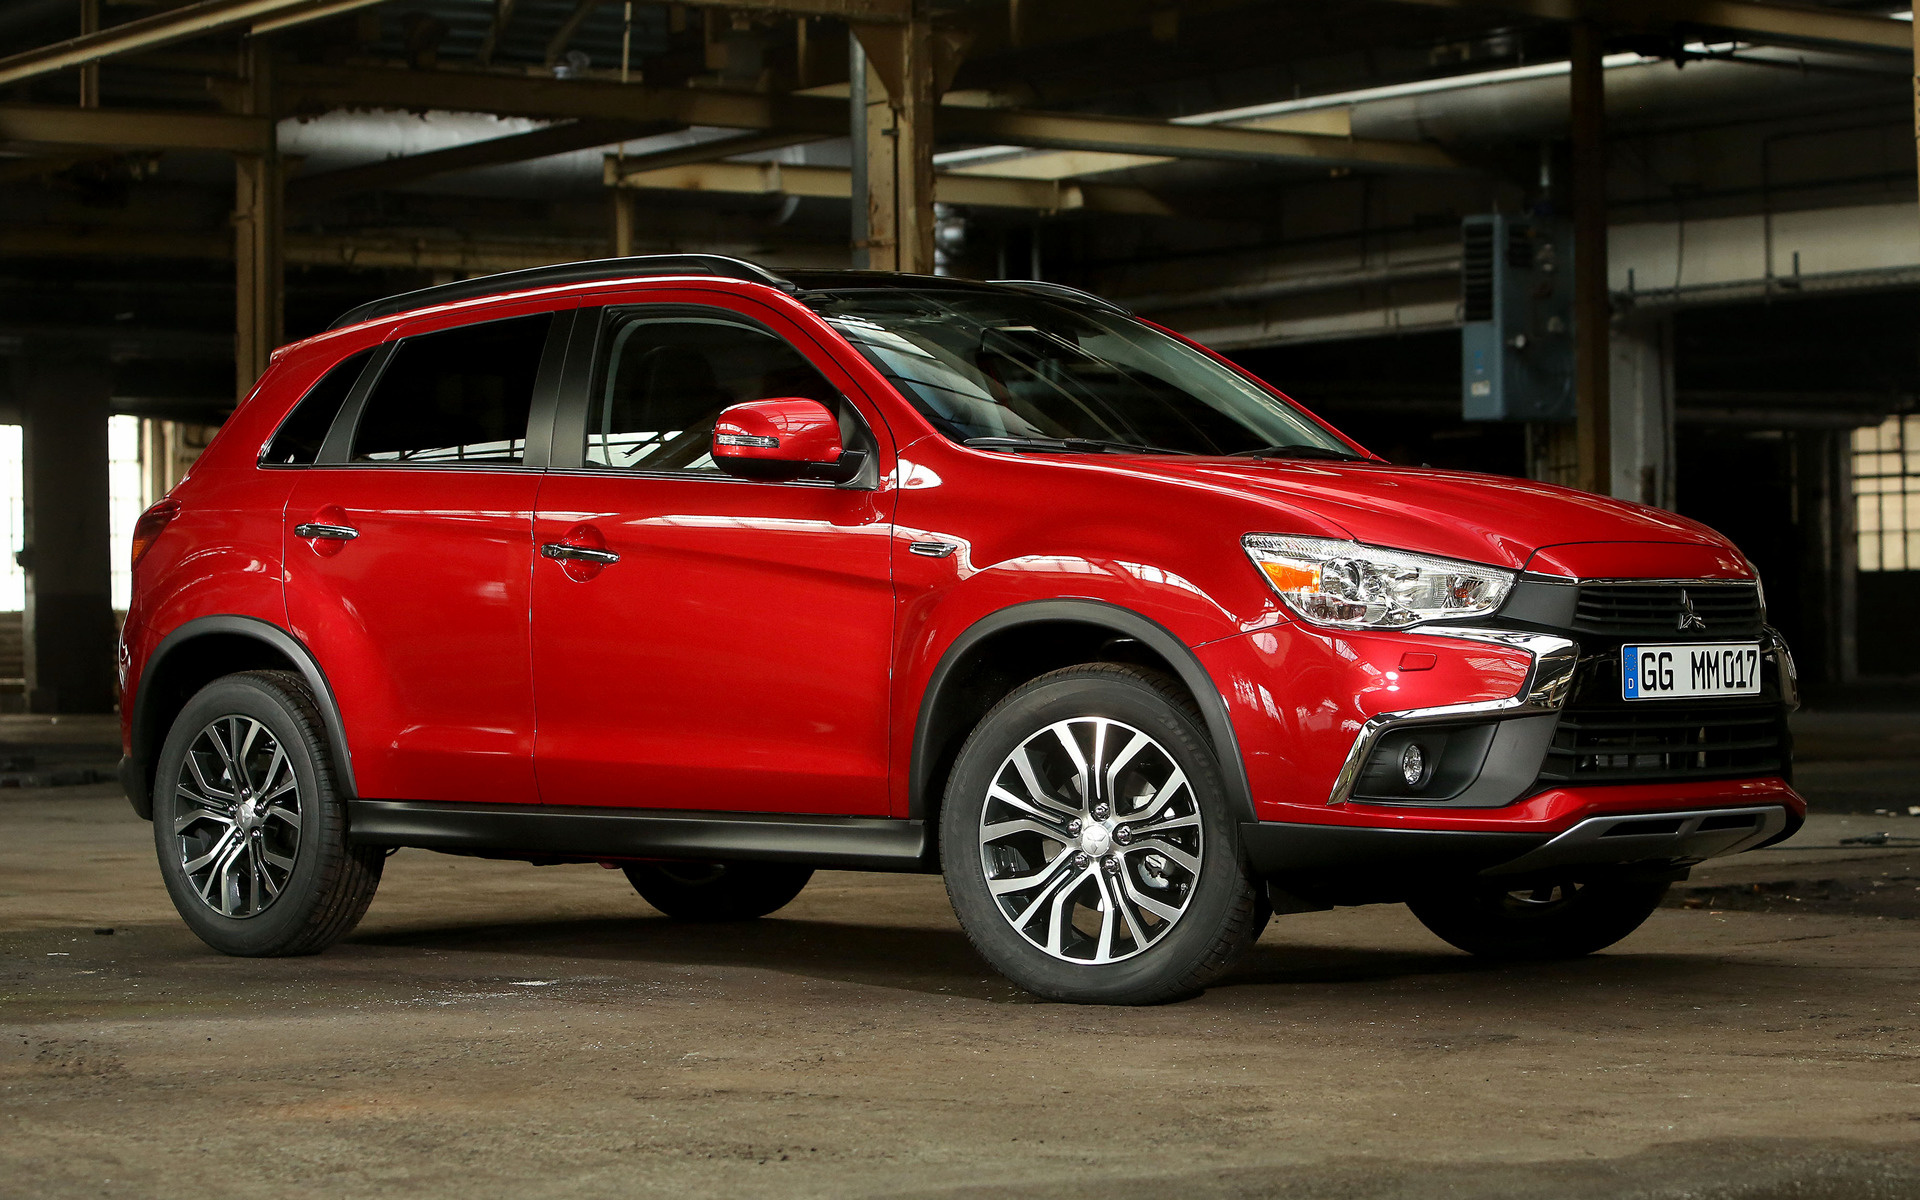 2016 Dodge Ram >> 2016 Mitsubishi ASX - Wallpapers and HD Images | Car Pixel